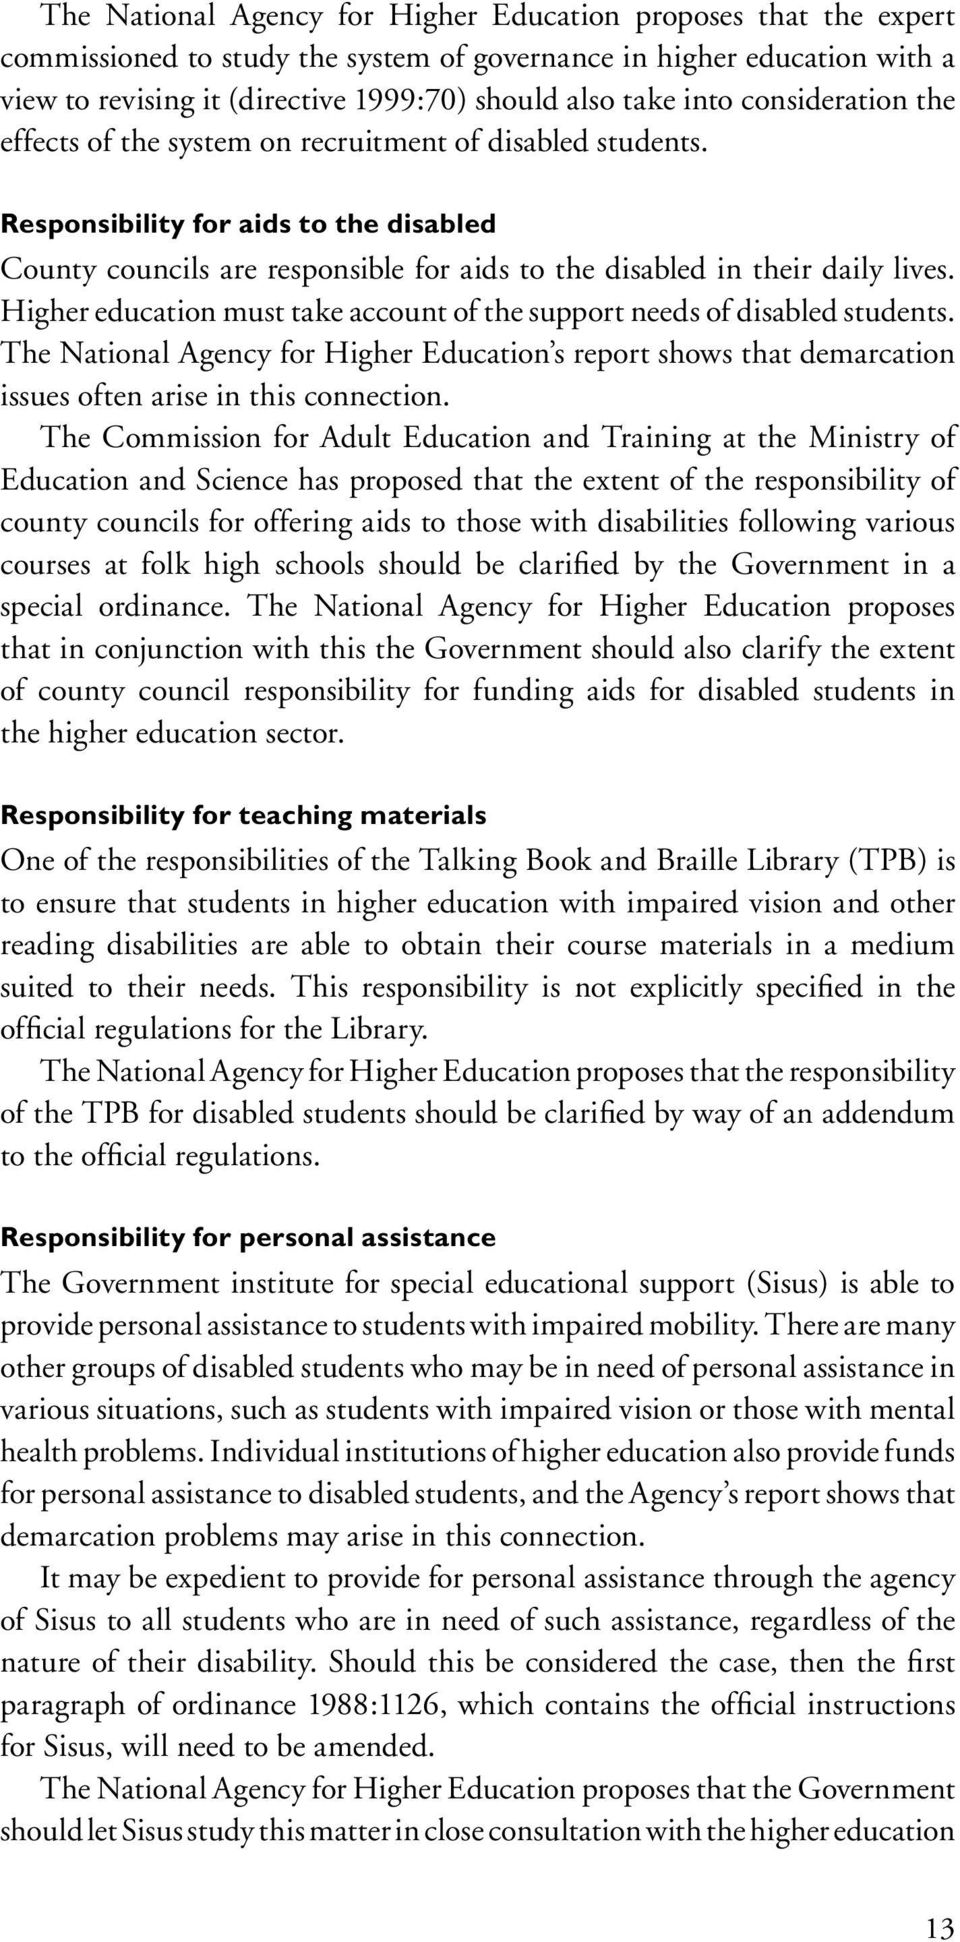 Higher education must take account of the support needs of disabled students. The National Agency for Higher Education s report shows that demarcation issues often arise in this connection.